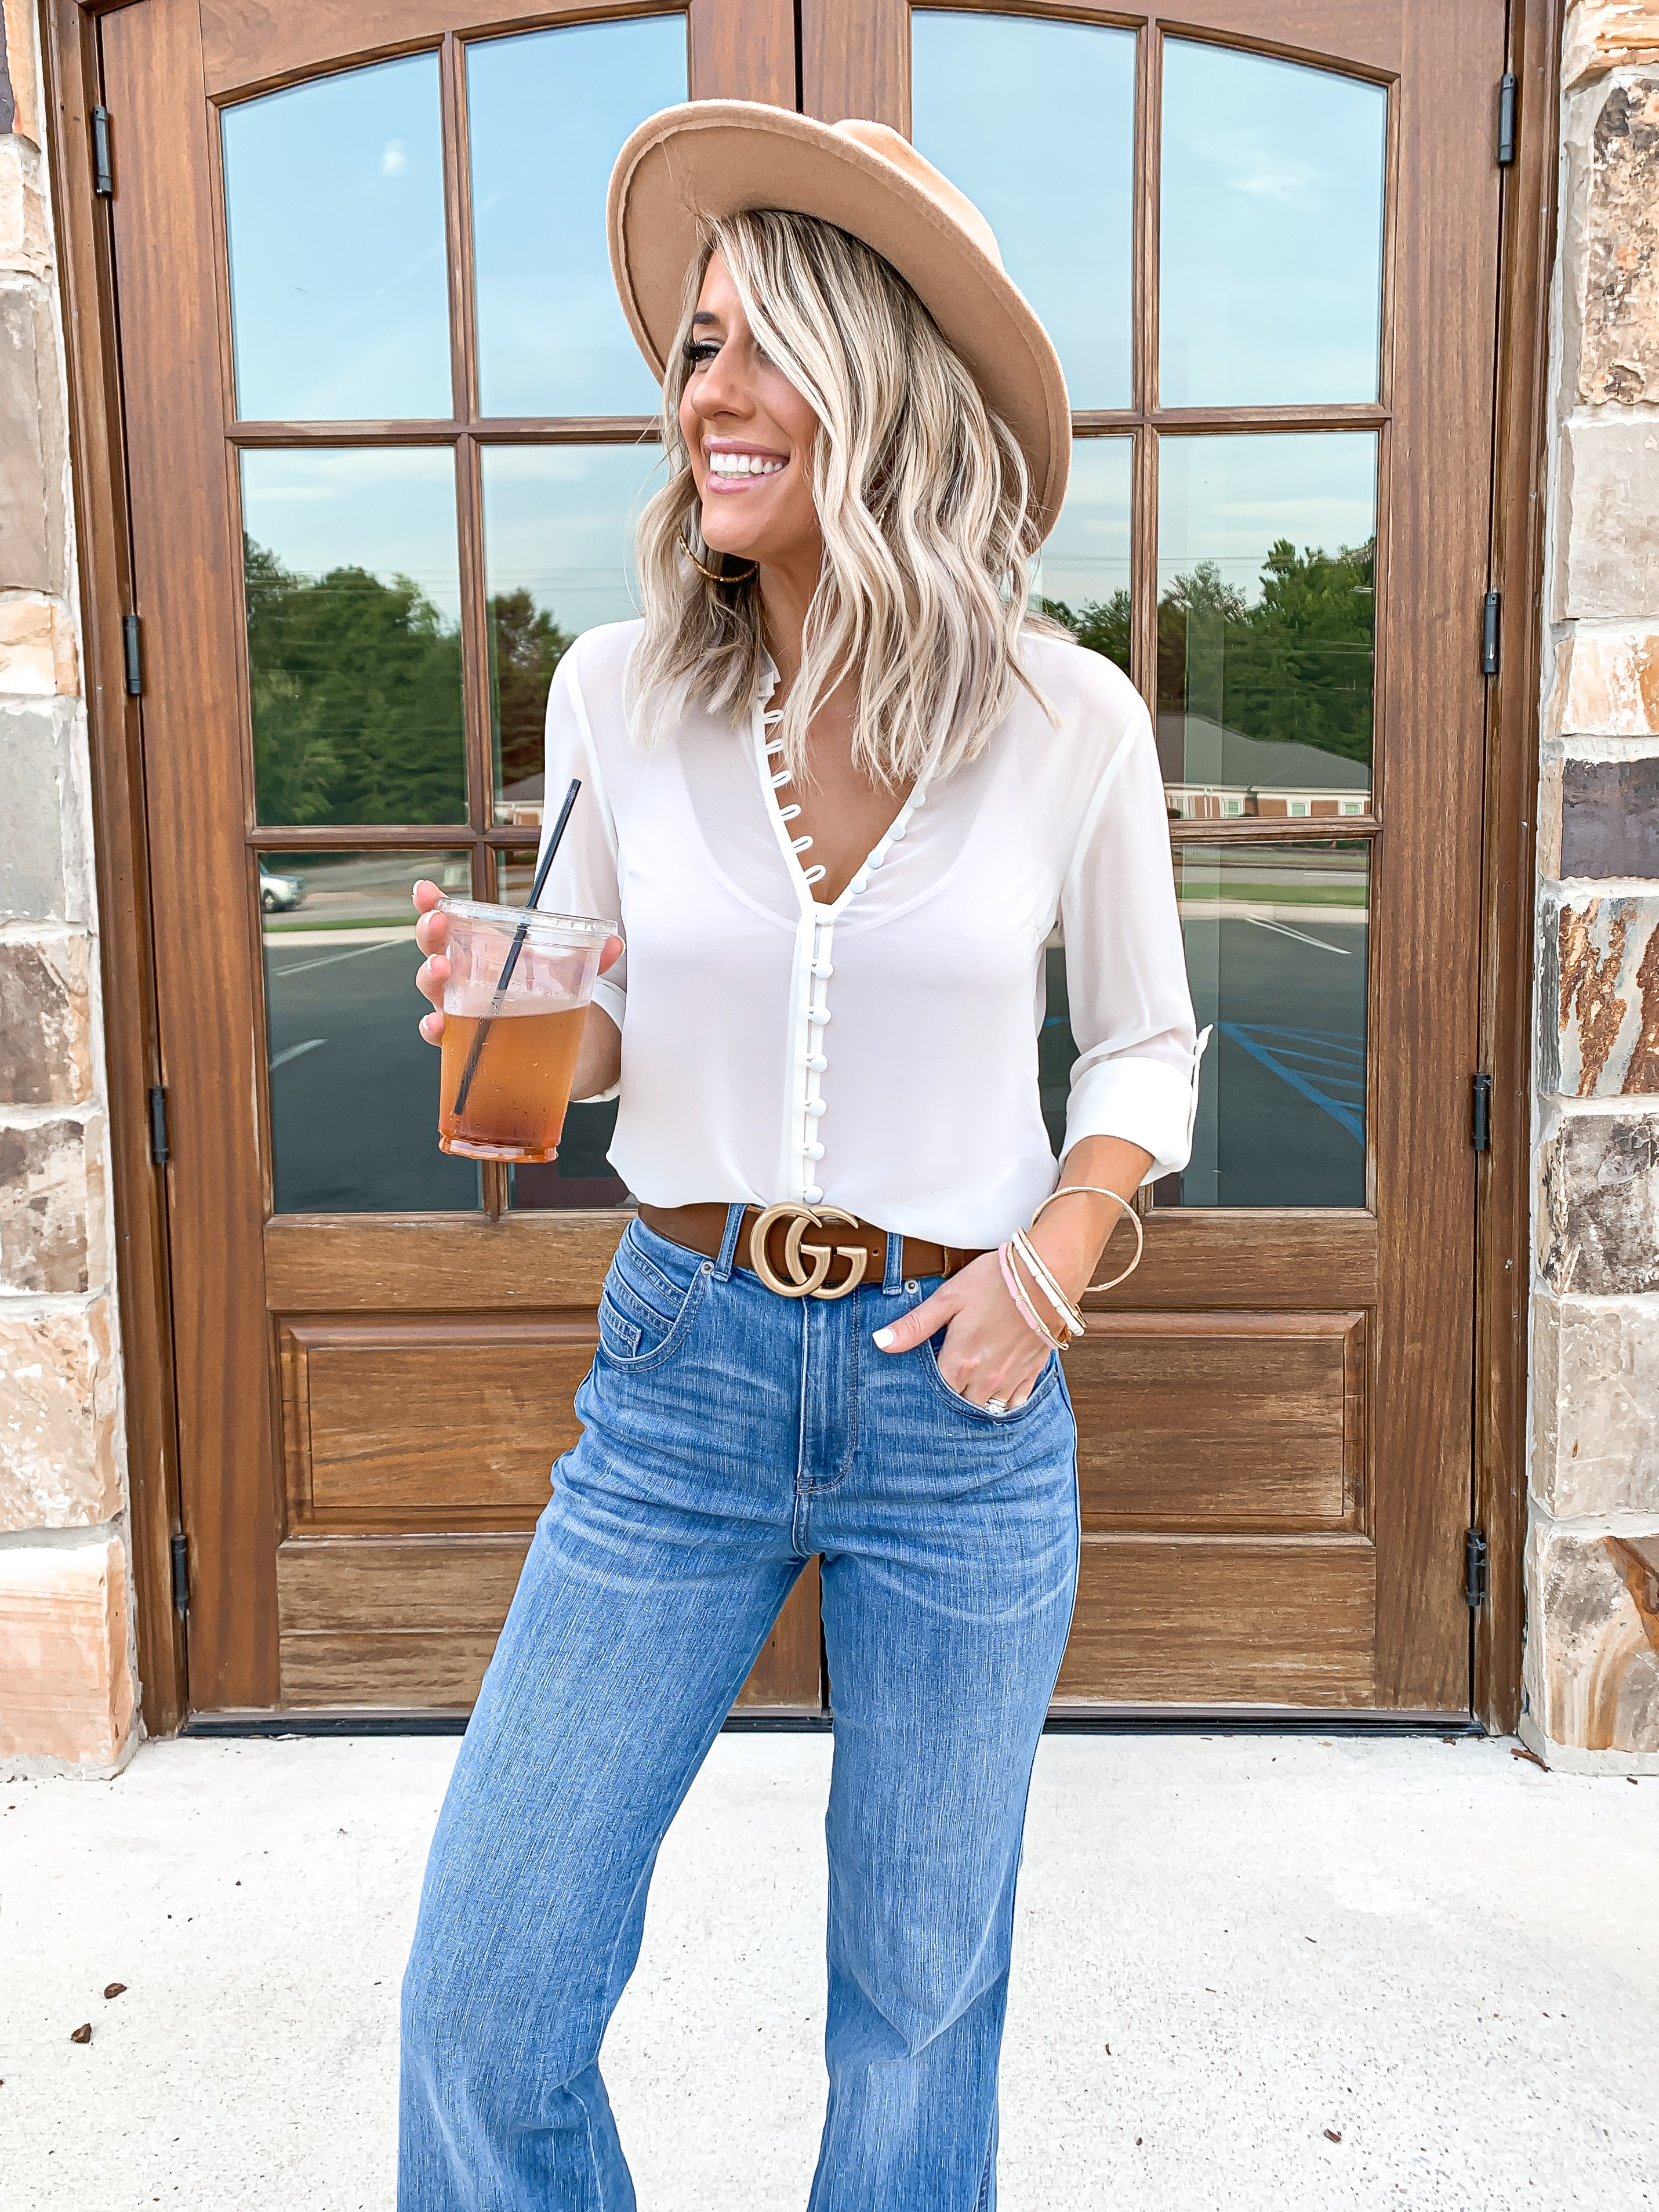 CLASSIC BOHO STYLE WHITE BUTTON DOWN TOP BLUE FLARE JEANS OUTFIT LAURA BEVERLIN BROWN GUCCI BELT19